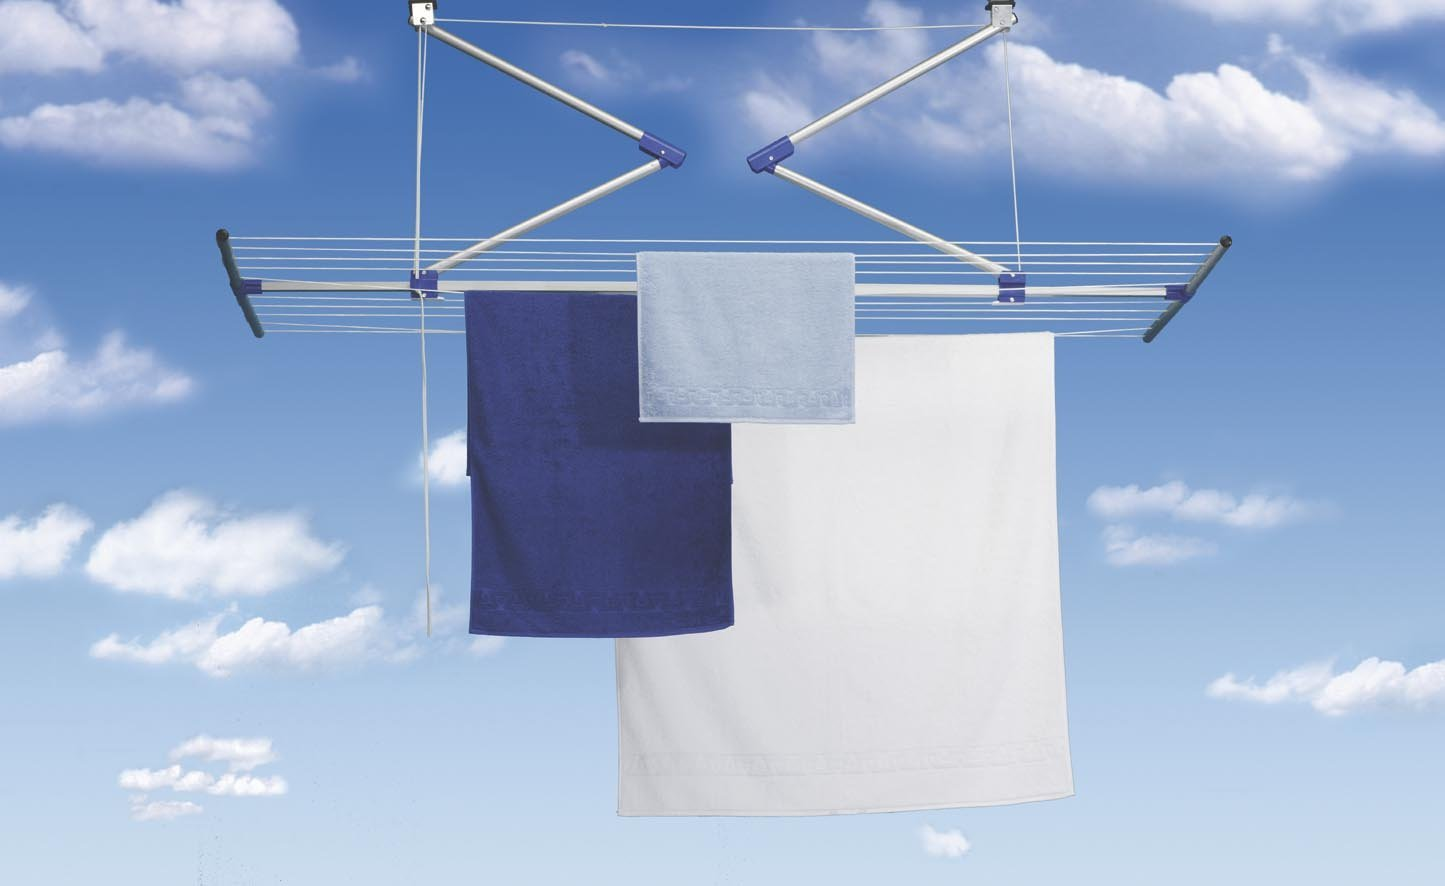 Lift Laundry Drying Rack Ceiling Clothes Airer